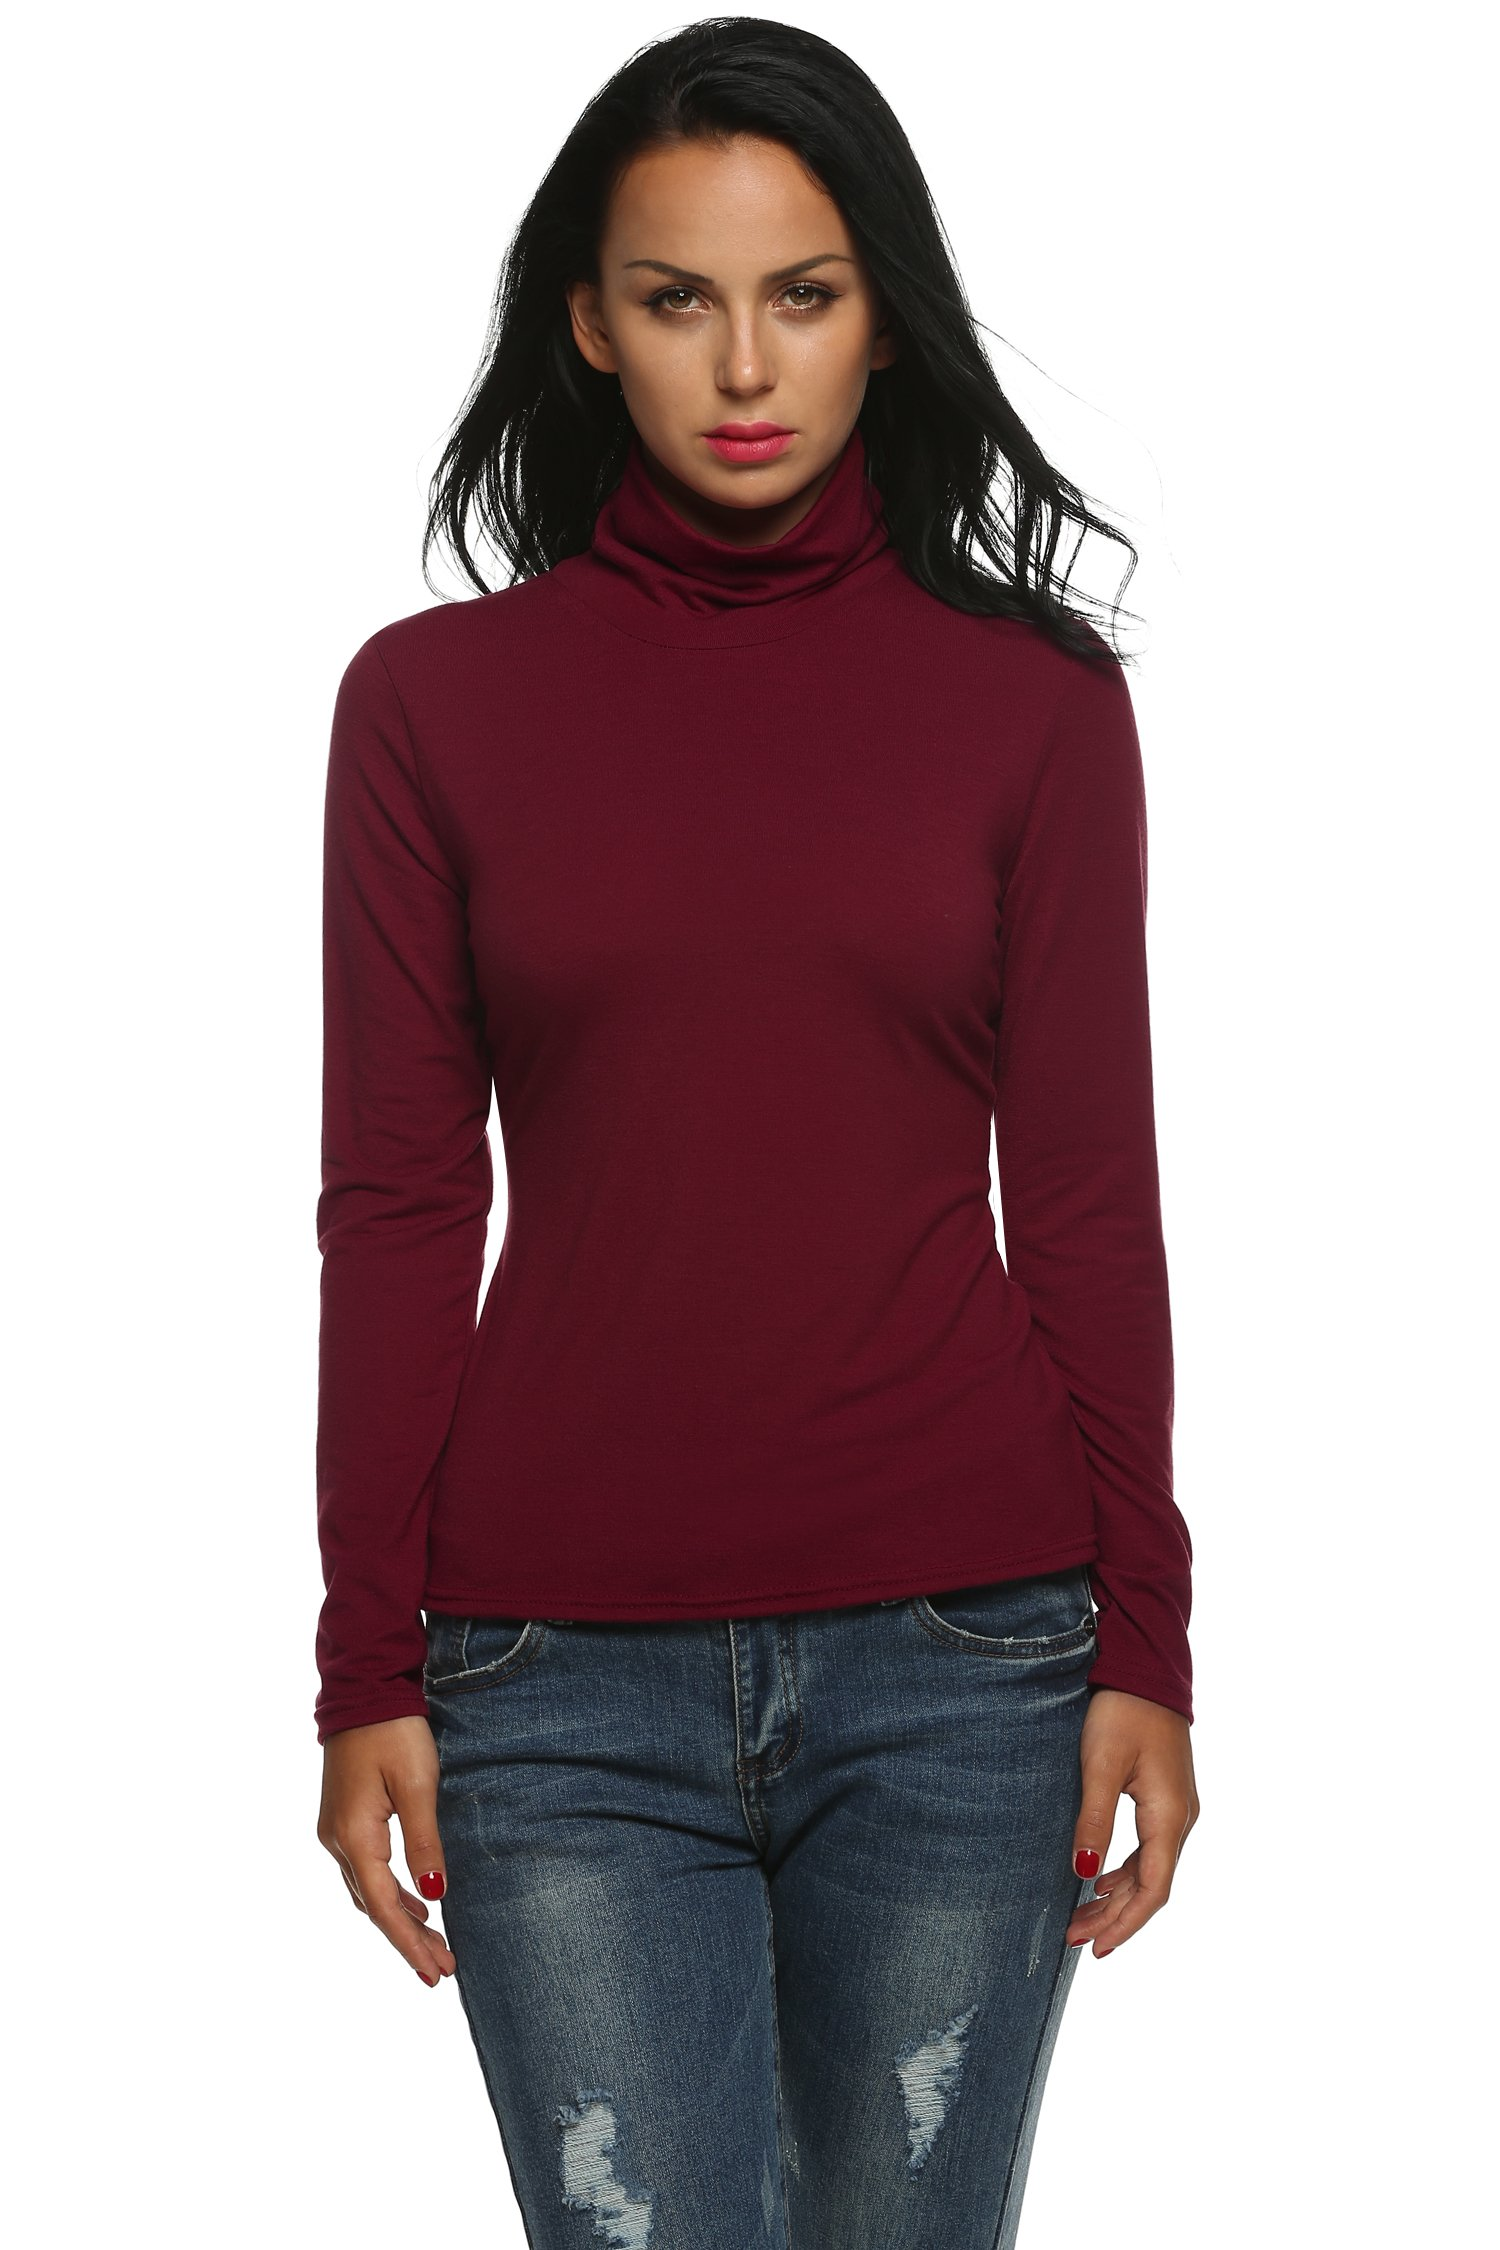 Goldenfox Lightweight Softwear for Womens Wine Red Blouses Cotton Solid Tops(Wine Red, Large)